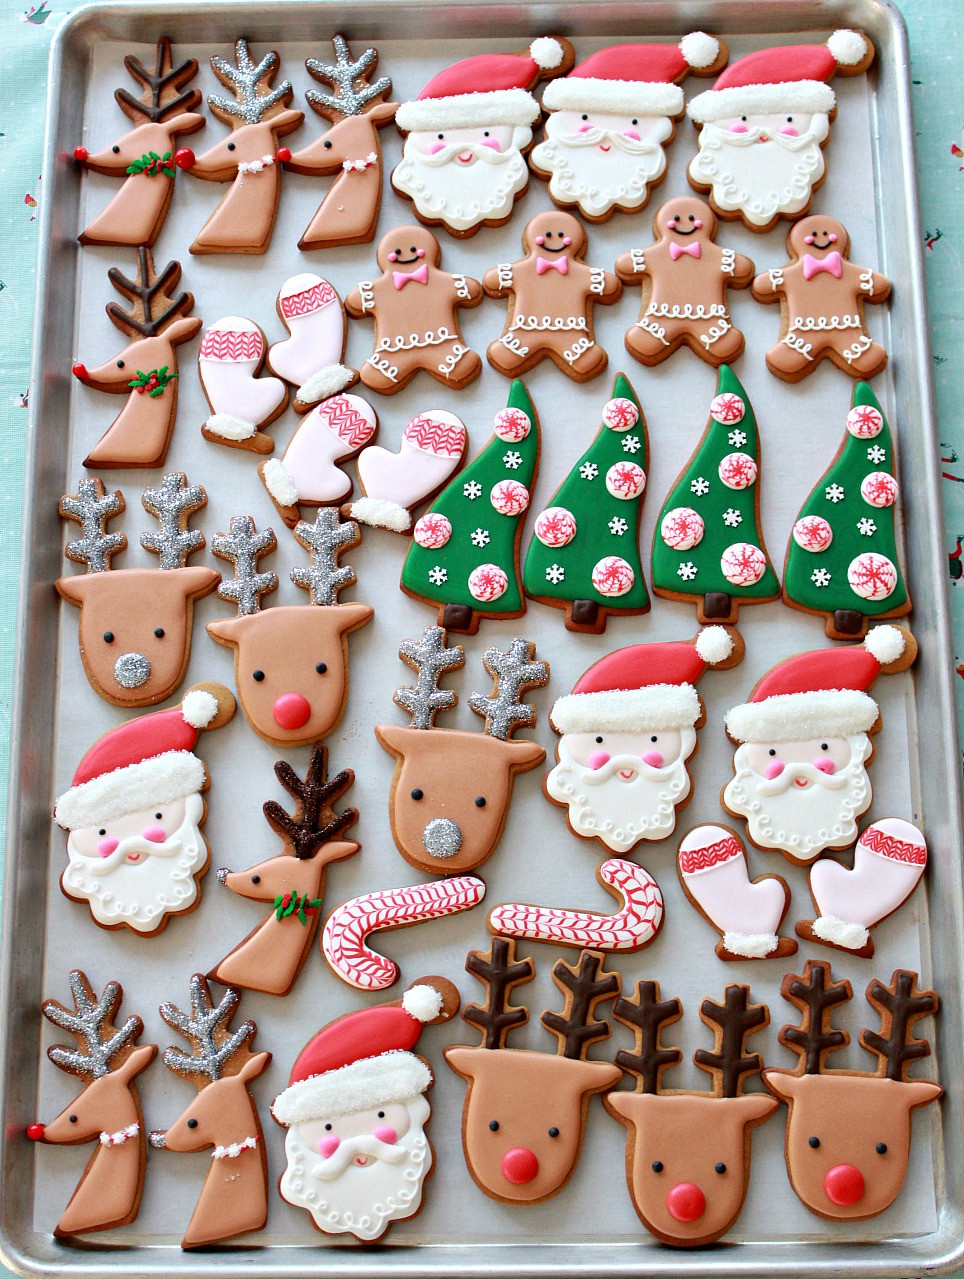 How To Decorate Christmas Cookies  Video How to Decorate Christmas Cookies Simple Designs